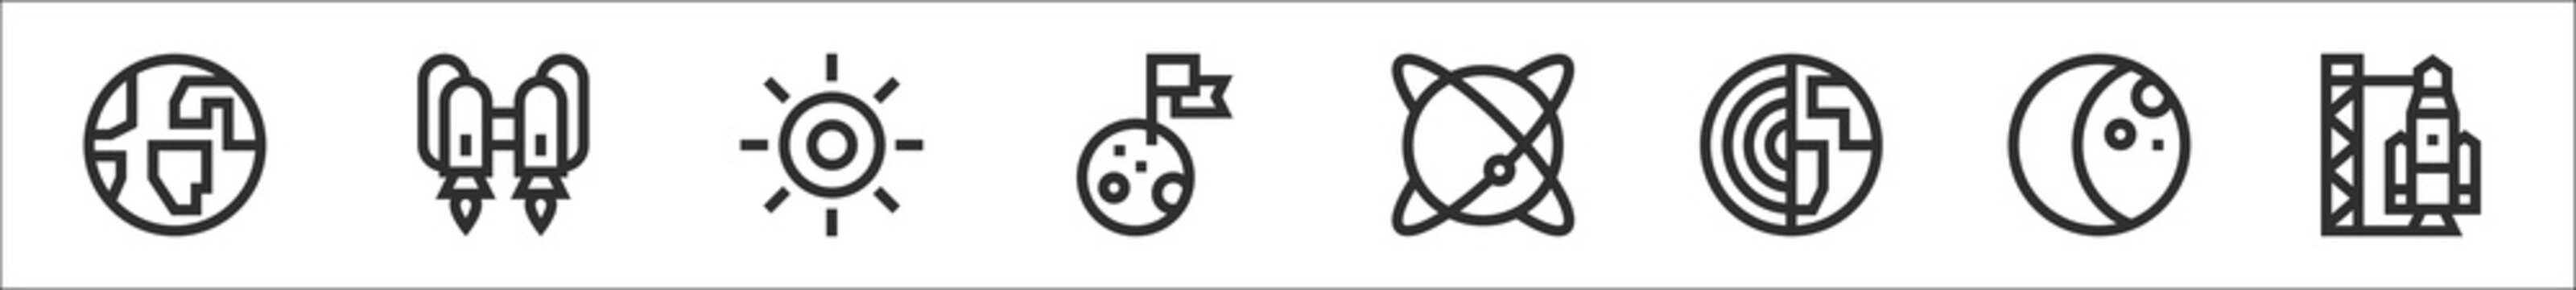 set of 8 space thin outline icons such as earth, jetpack, sun, moon landing, planet, earth, moon, rocket